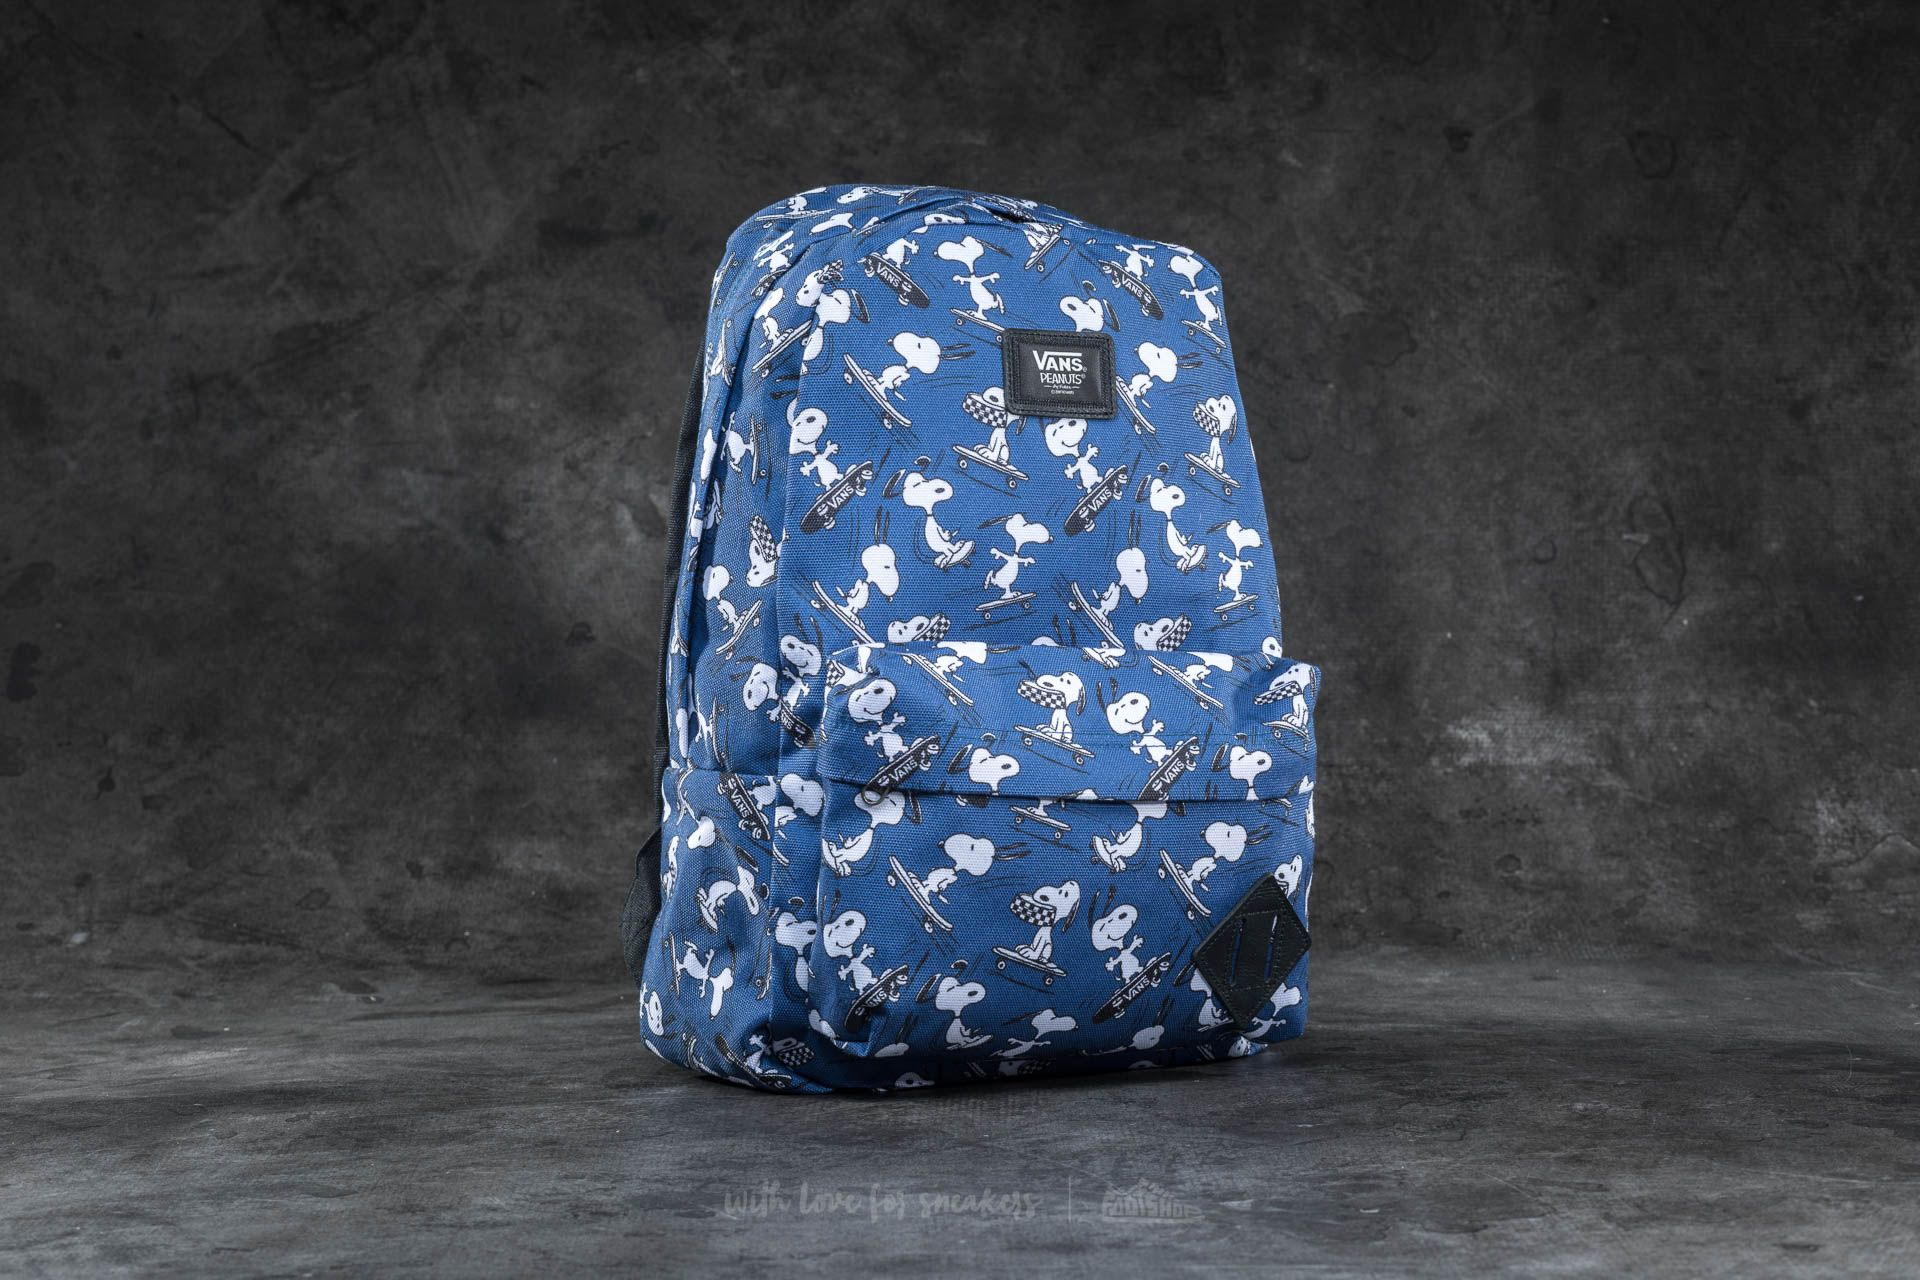 Vans x Peanuts New Skool Backpack True Navy Footshop – FR